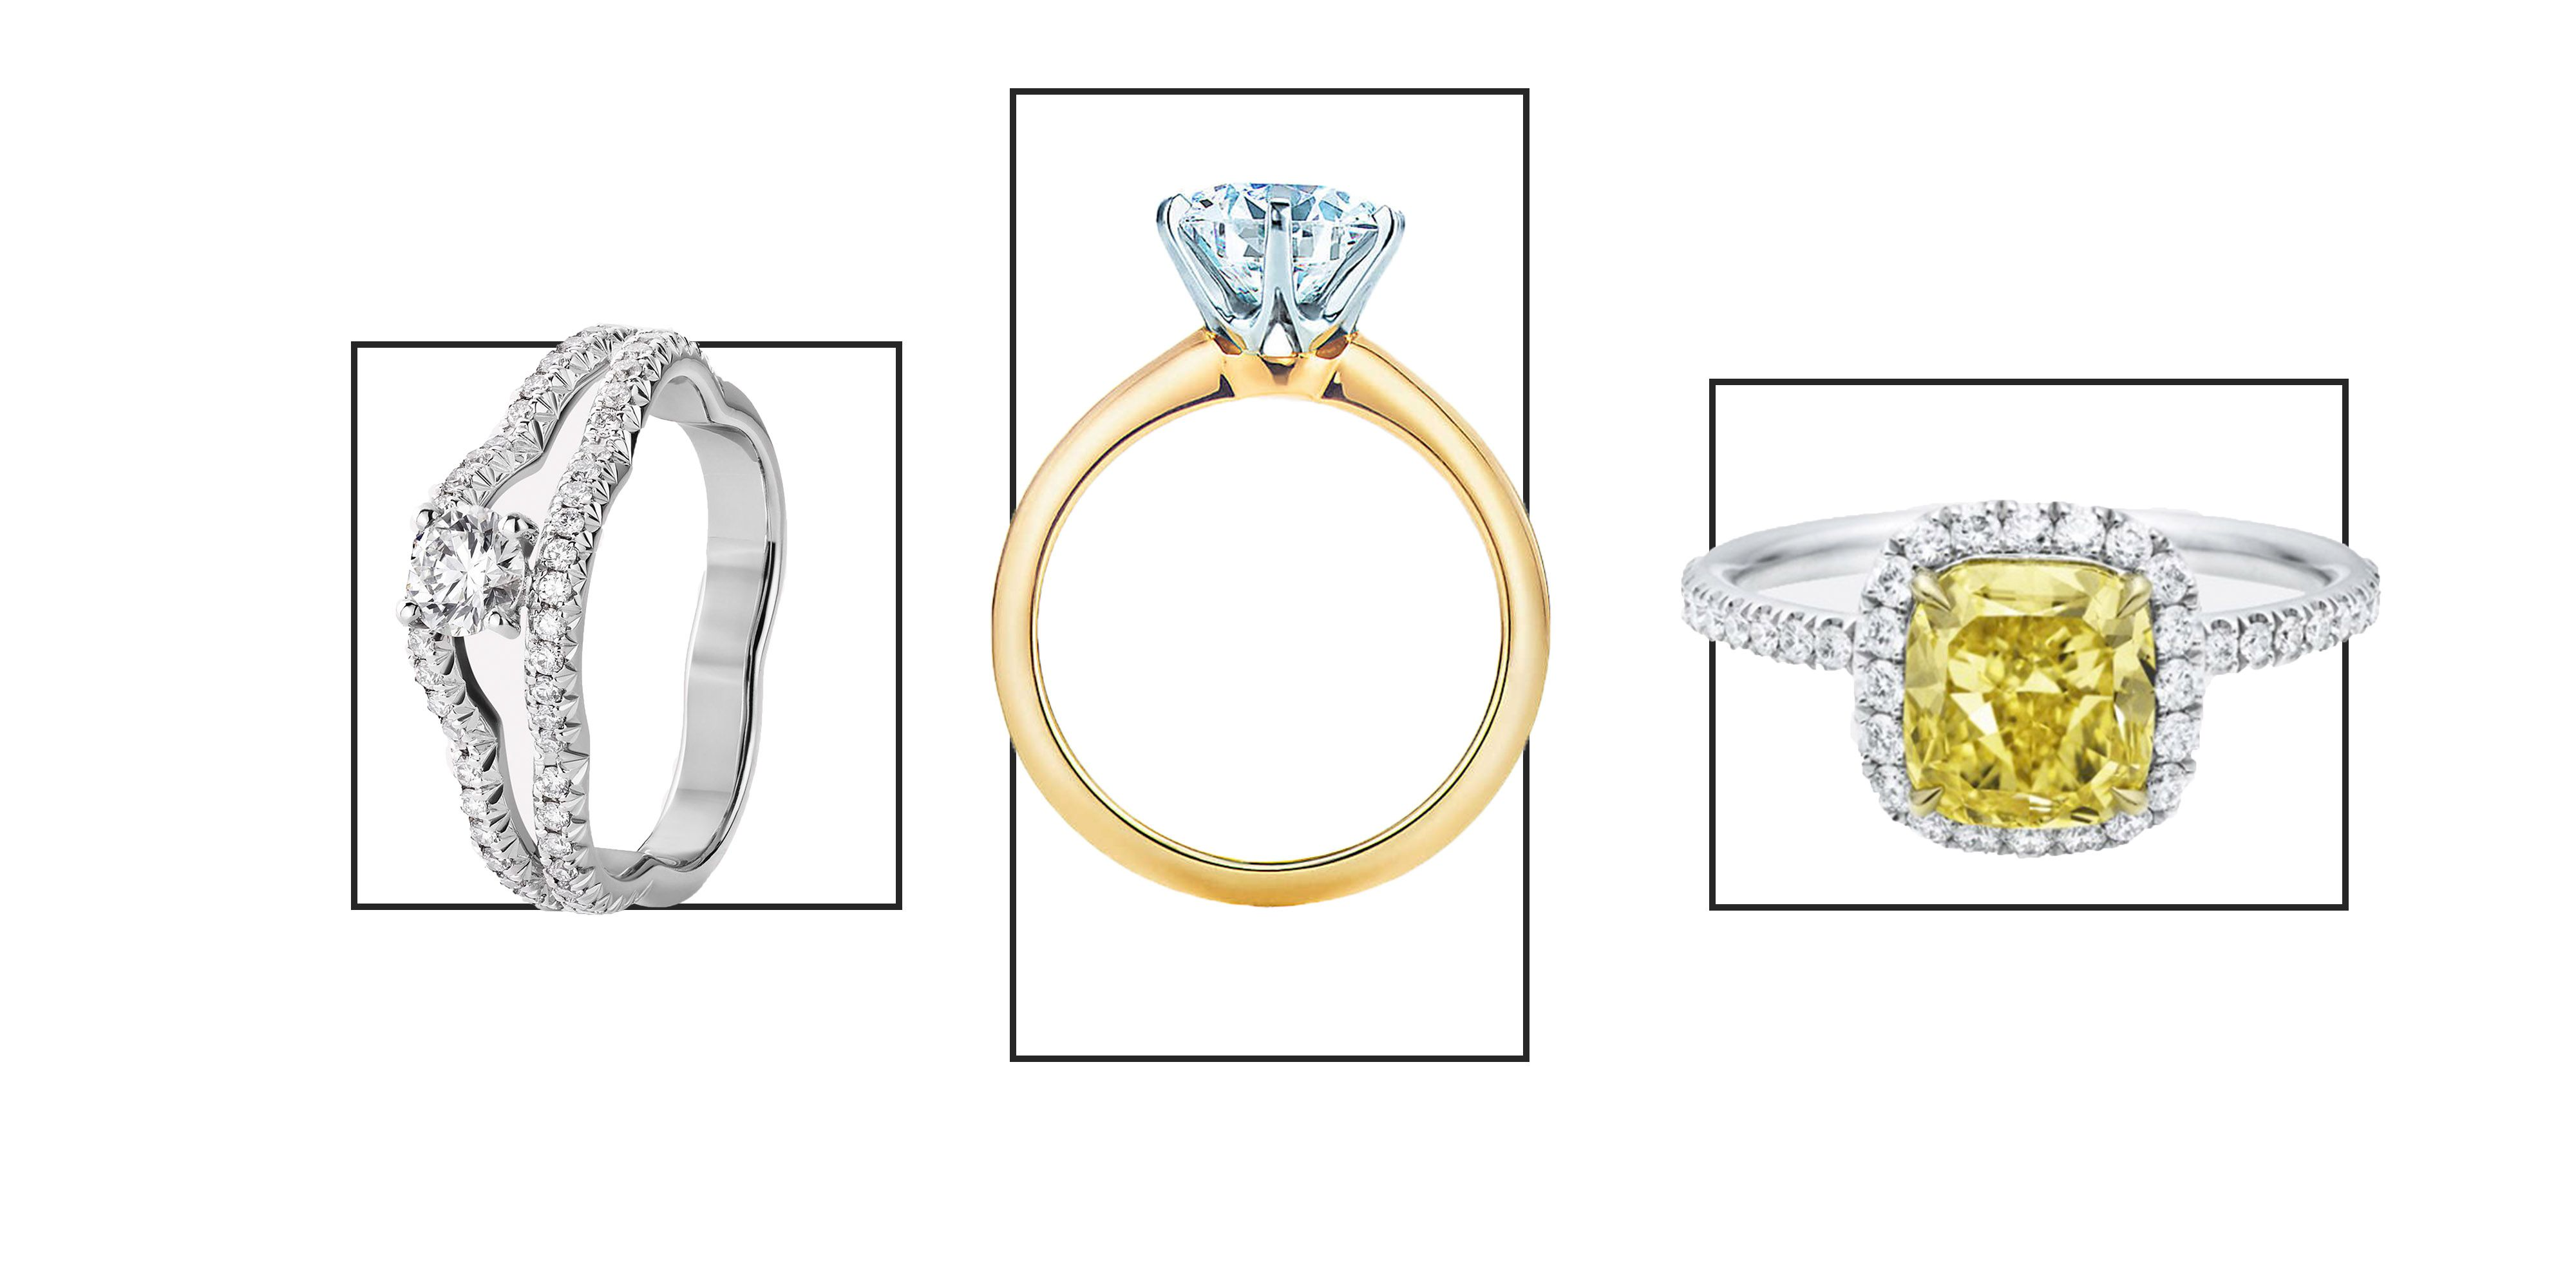 805d2bace996e Our guide to the best engagement rings - designer and classic ...